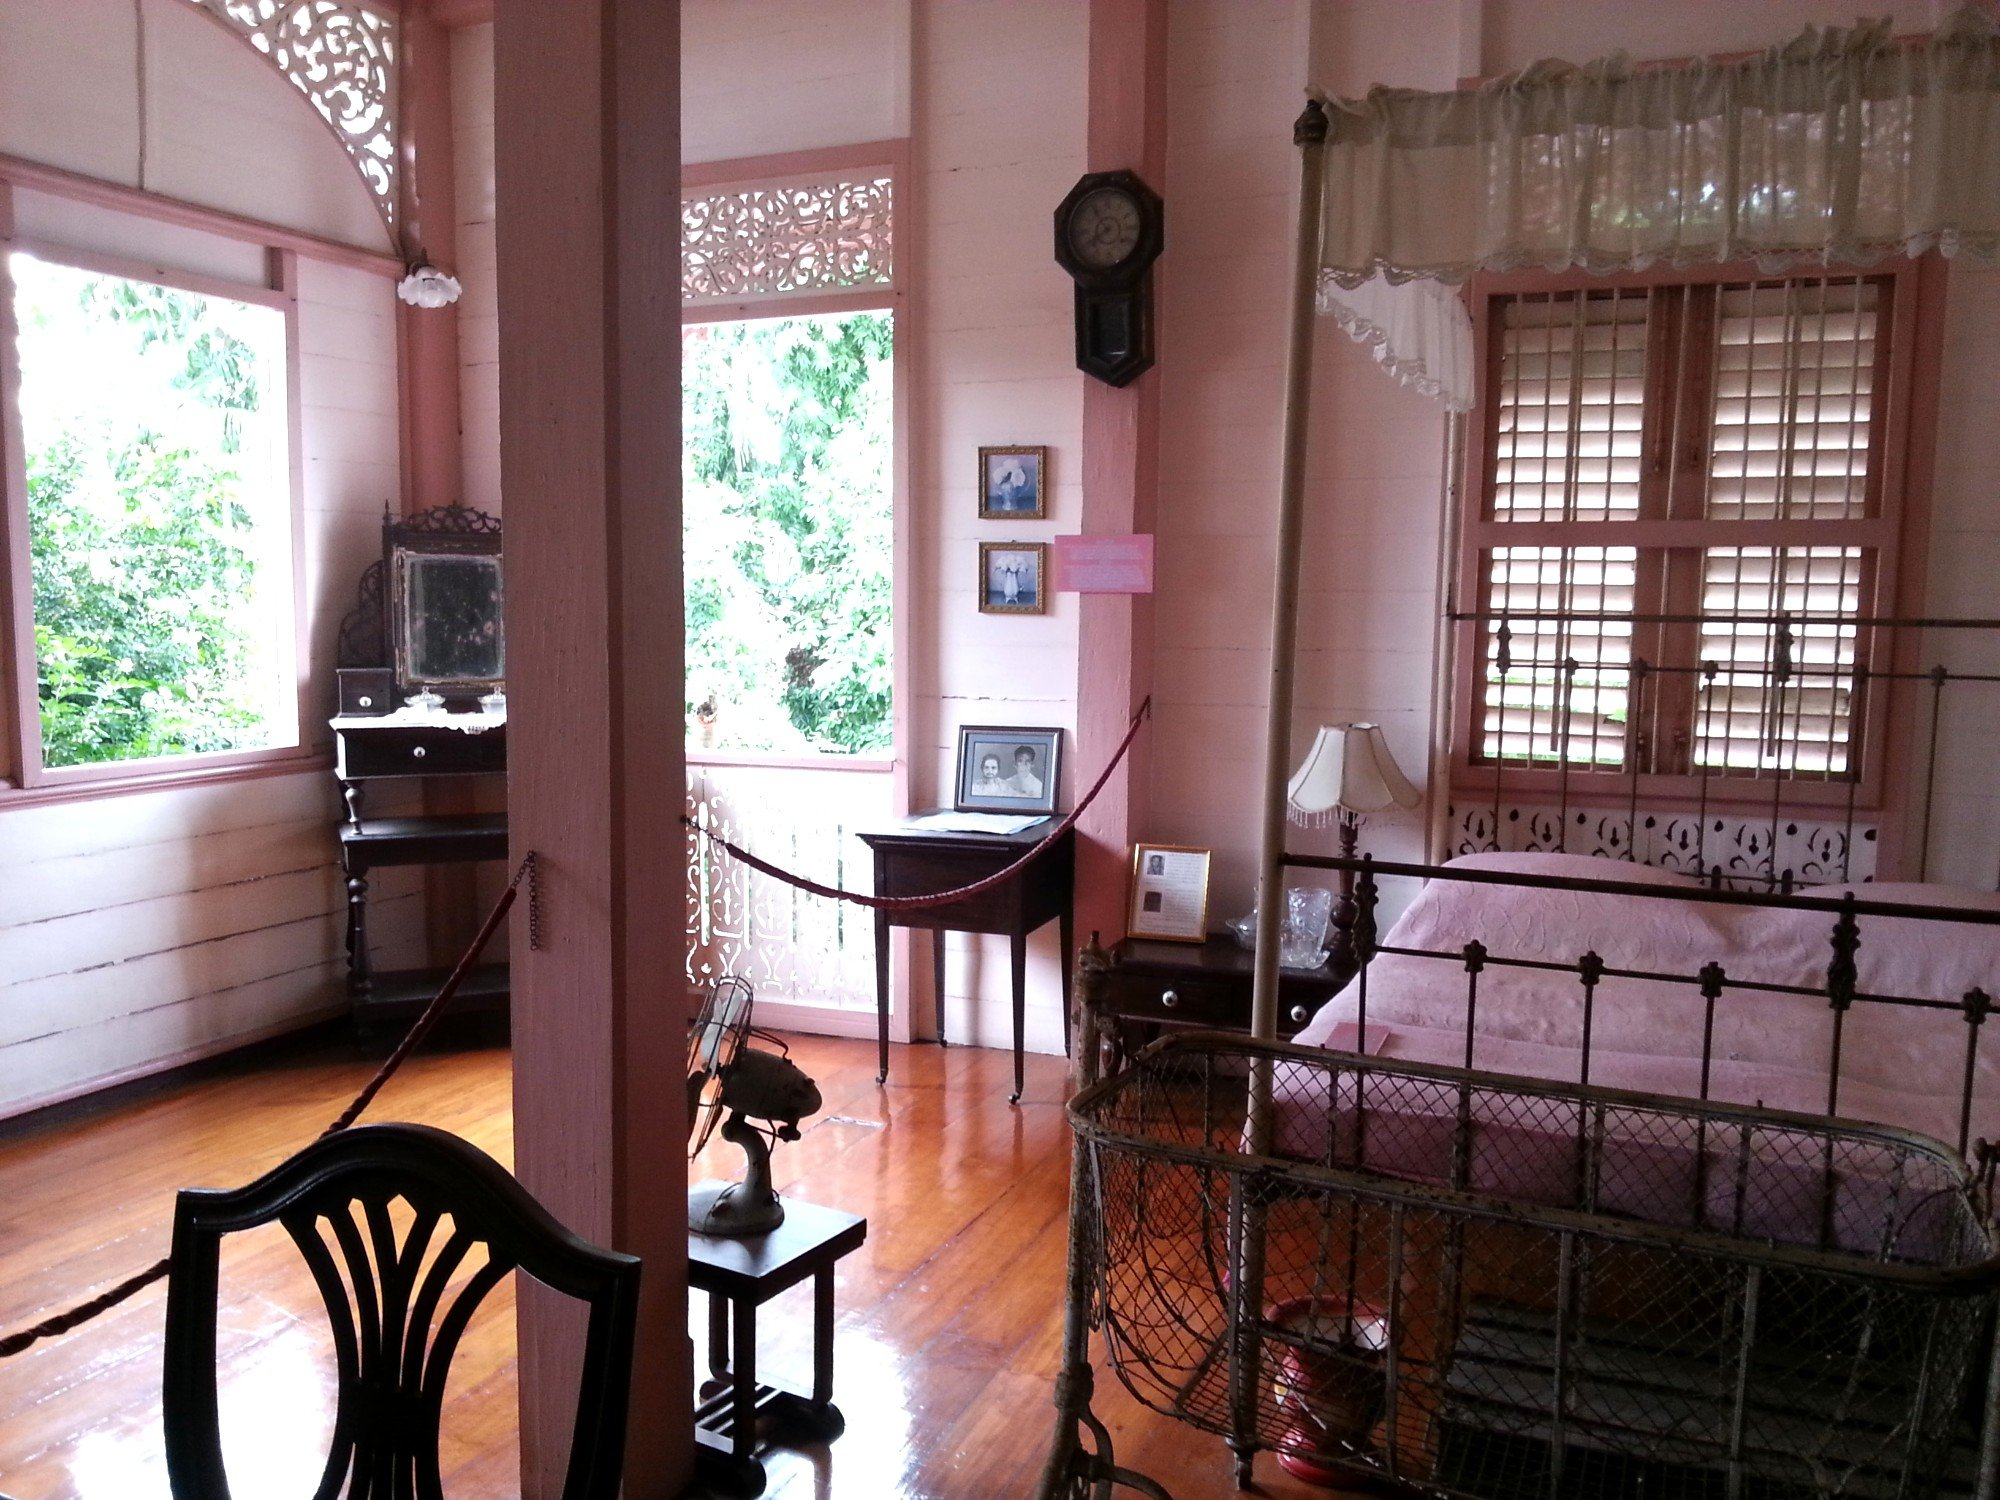 Bedroom at the Vongburi House Museum